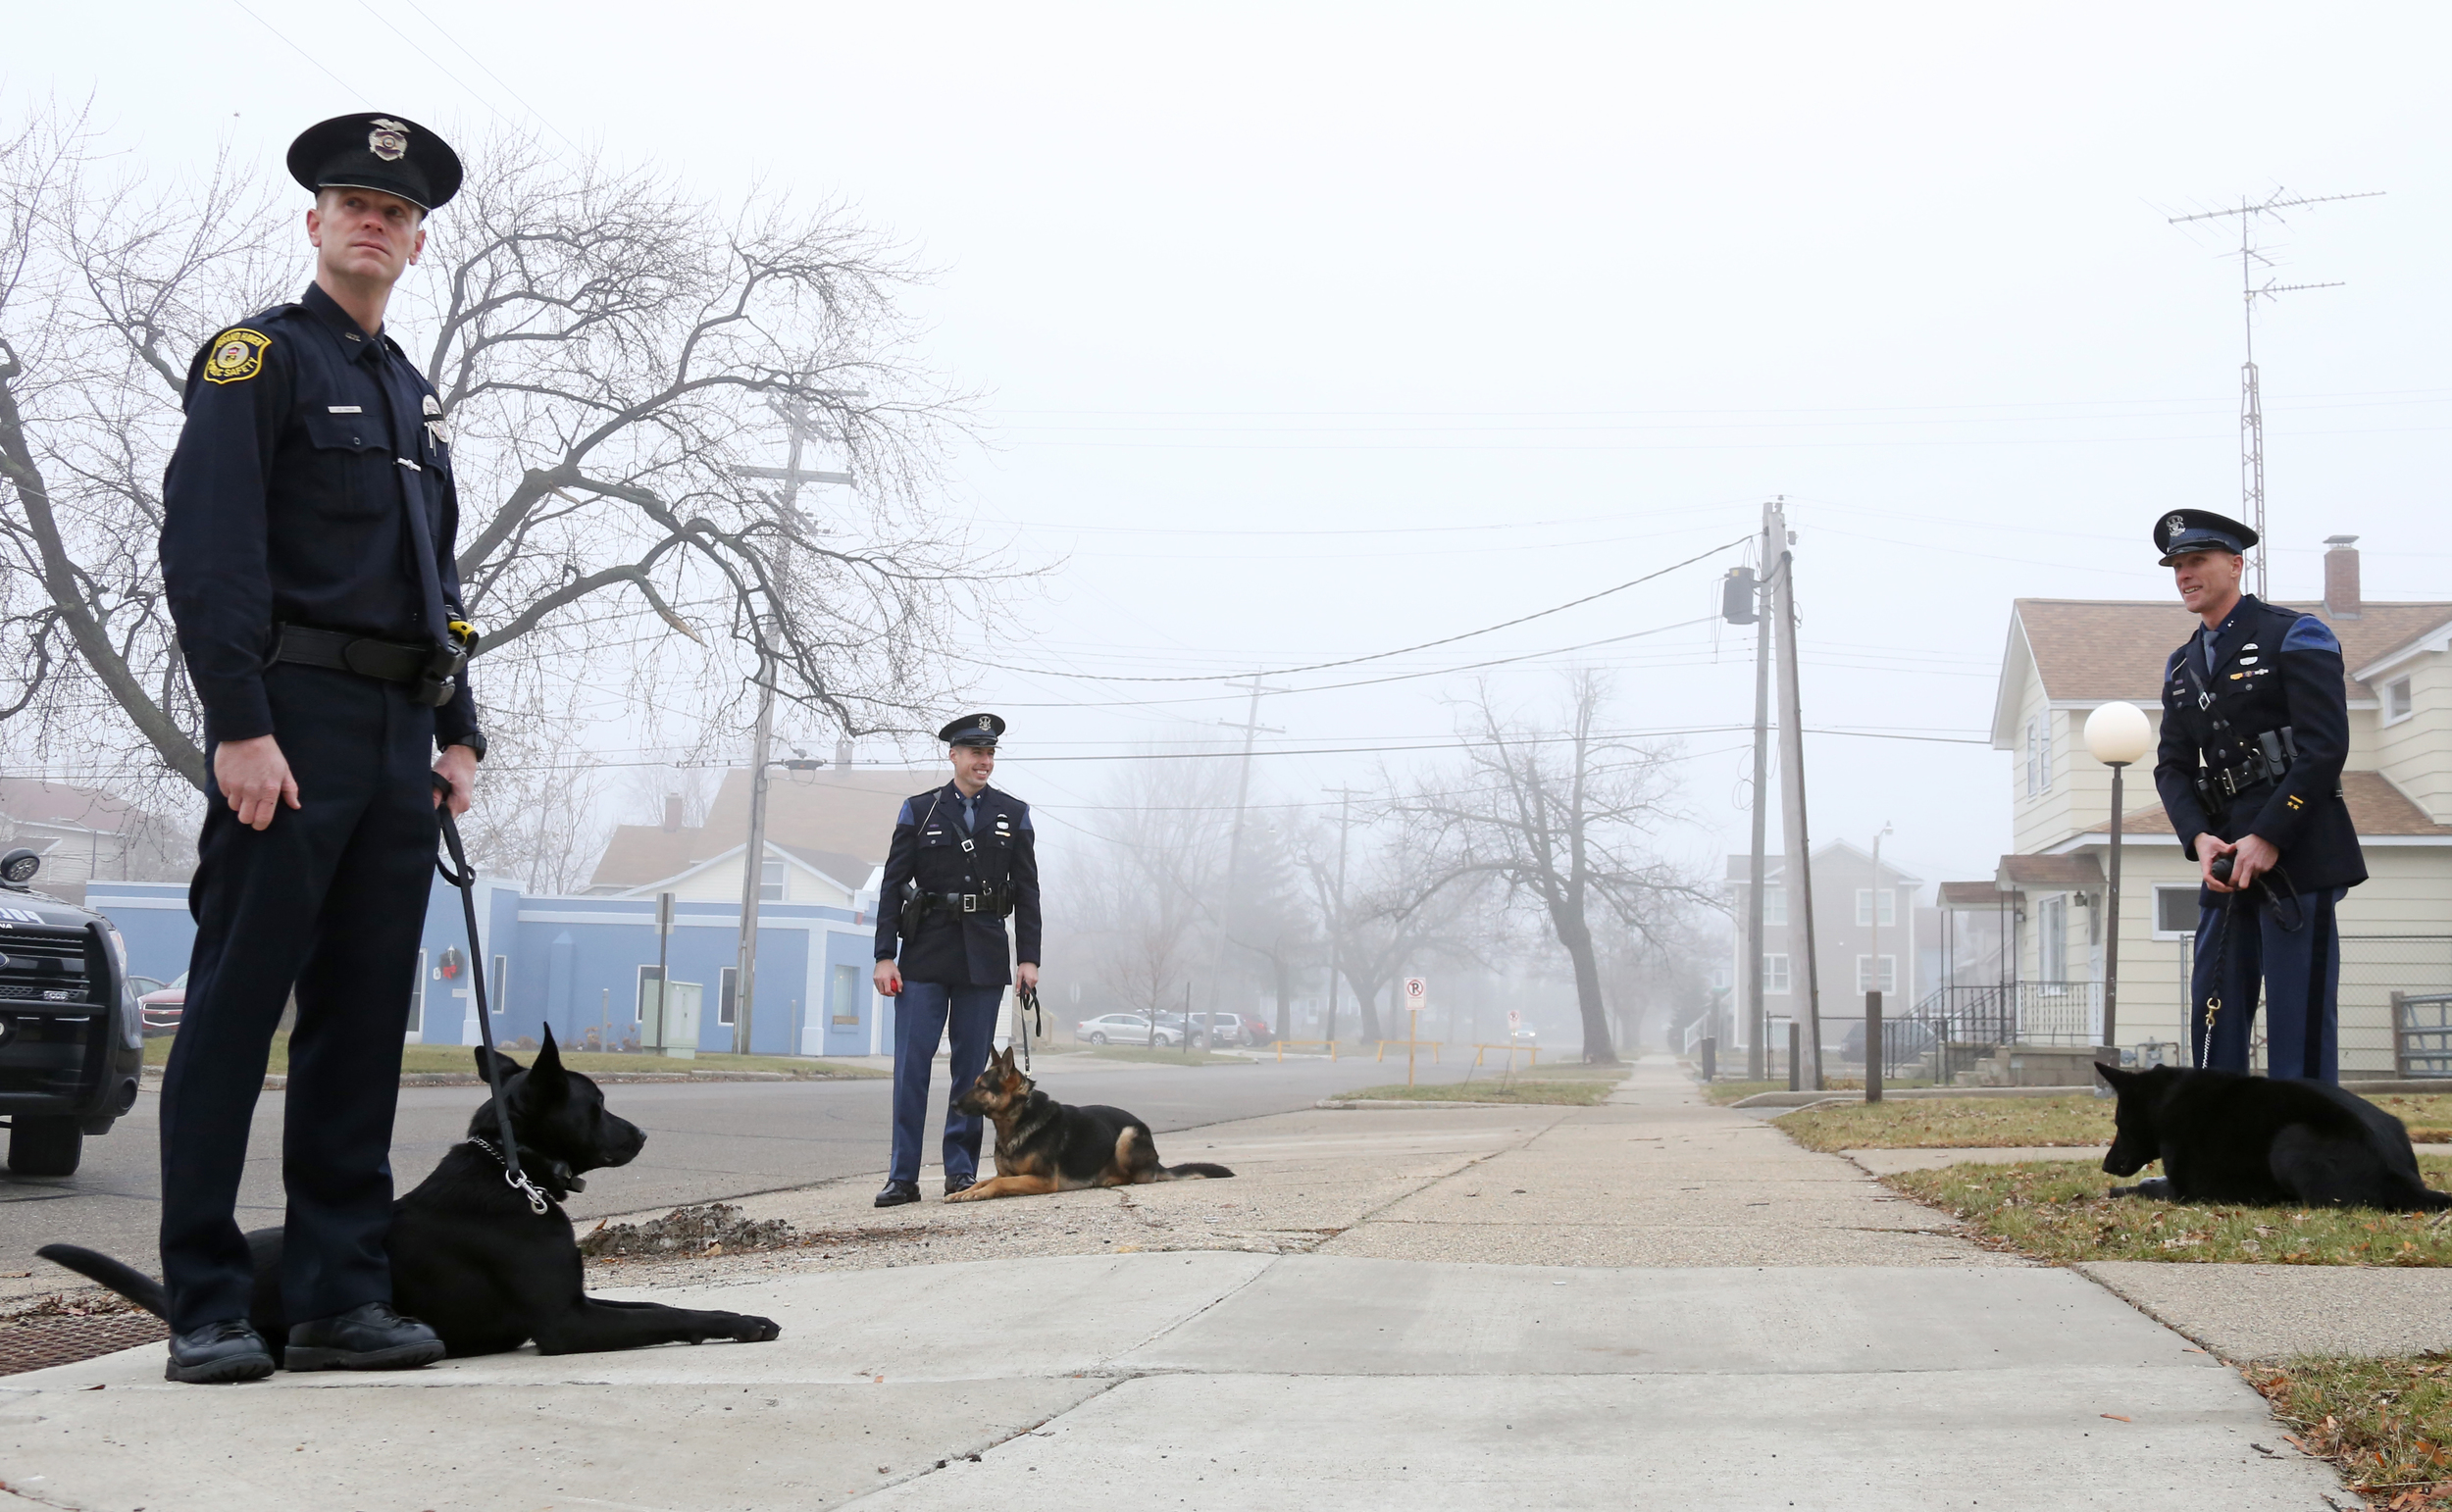 Law enforcement officers stand next to their police dogs keeping them calm and away from one another before the start of a ceremony commemorating the 20th anniversary of the shooting death of the Grand Haven police officer Scott Flahive in front of the Grand Haven Eagles building downtown Grand Haven on Dec. 13, 2014.